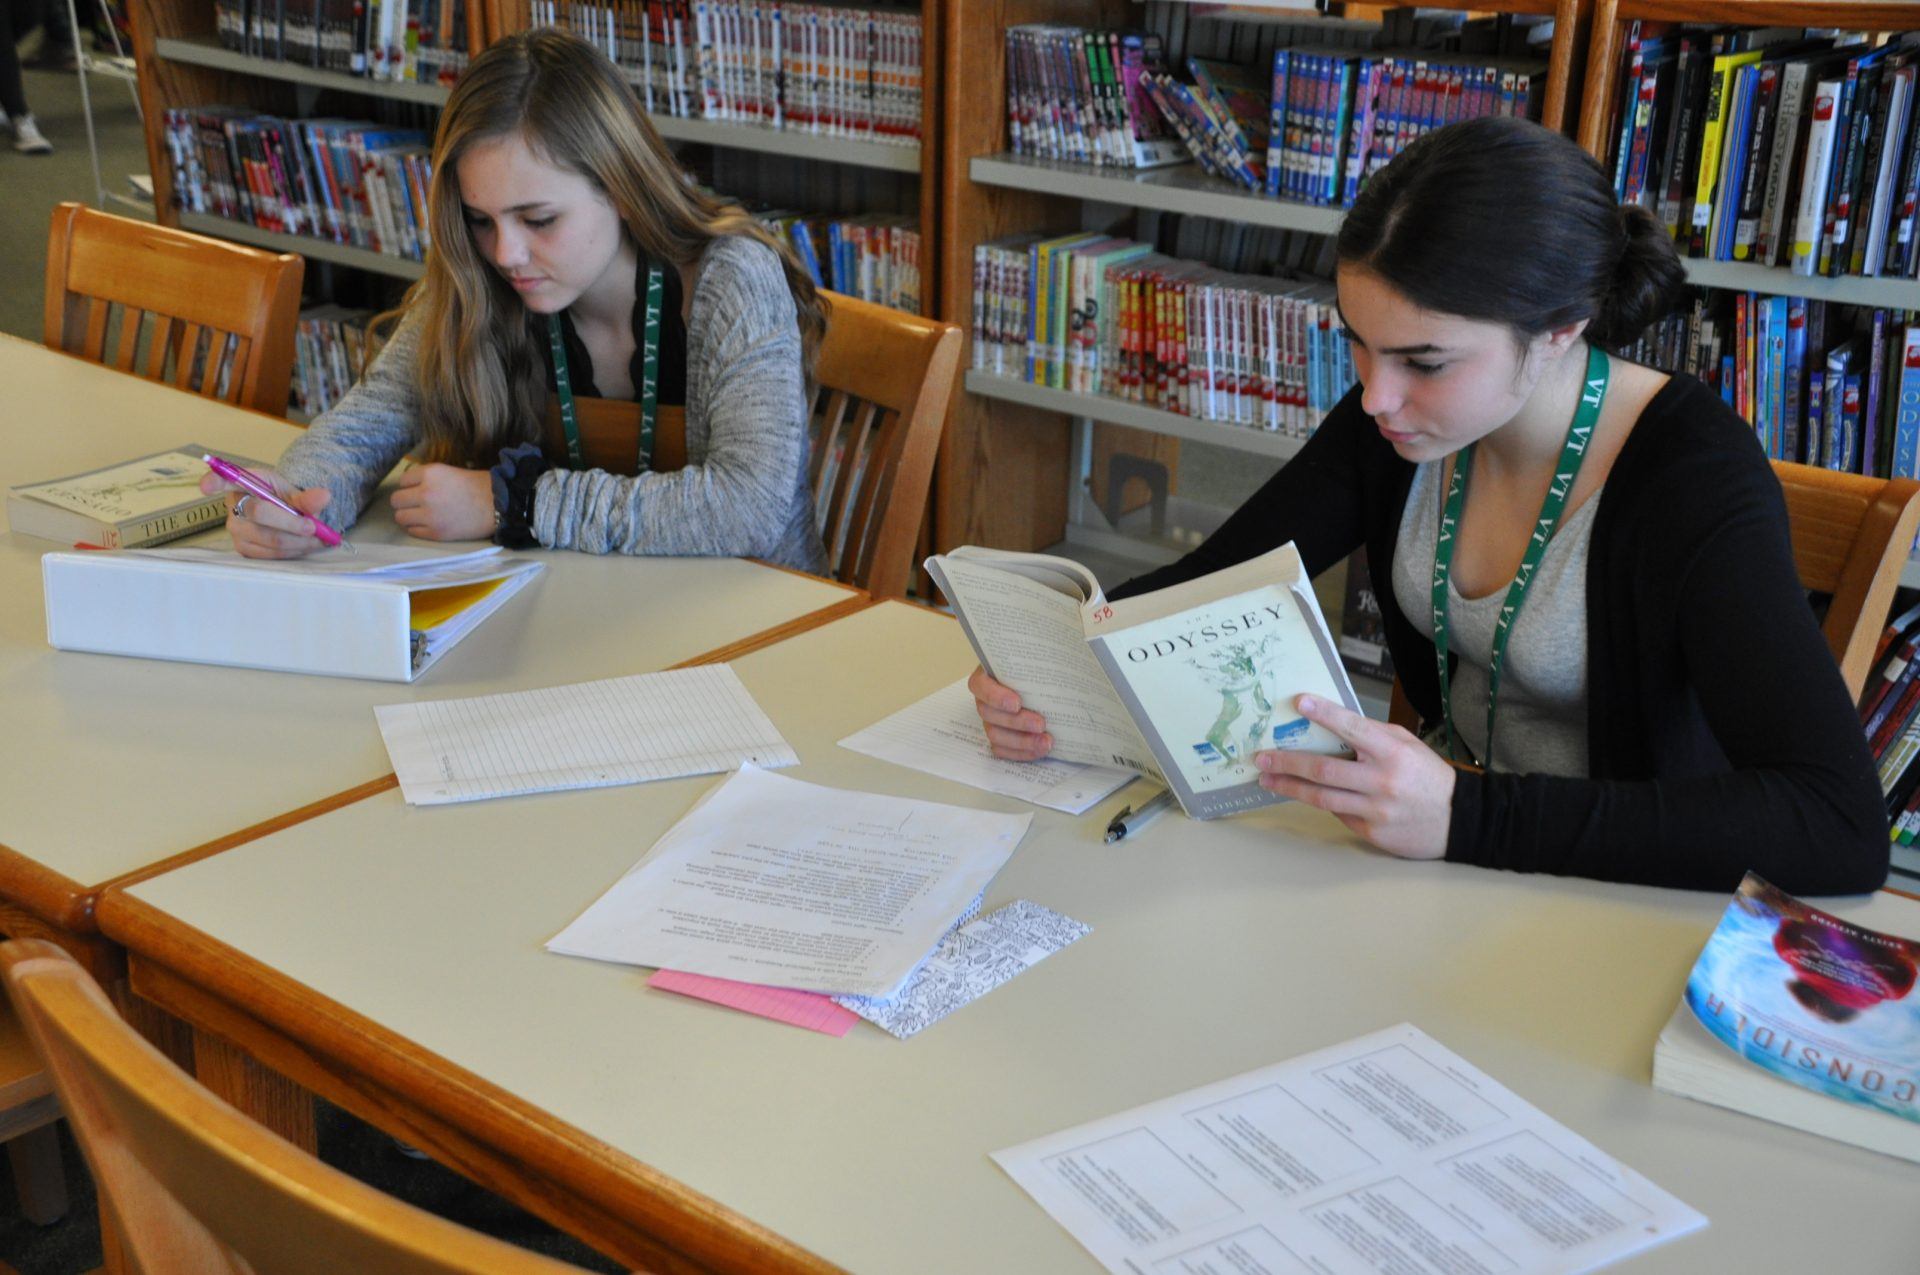 Students reading and writing in the library